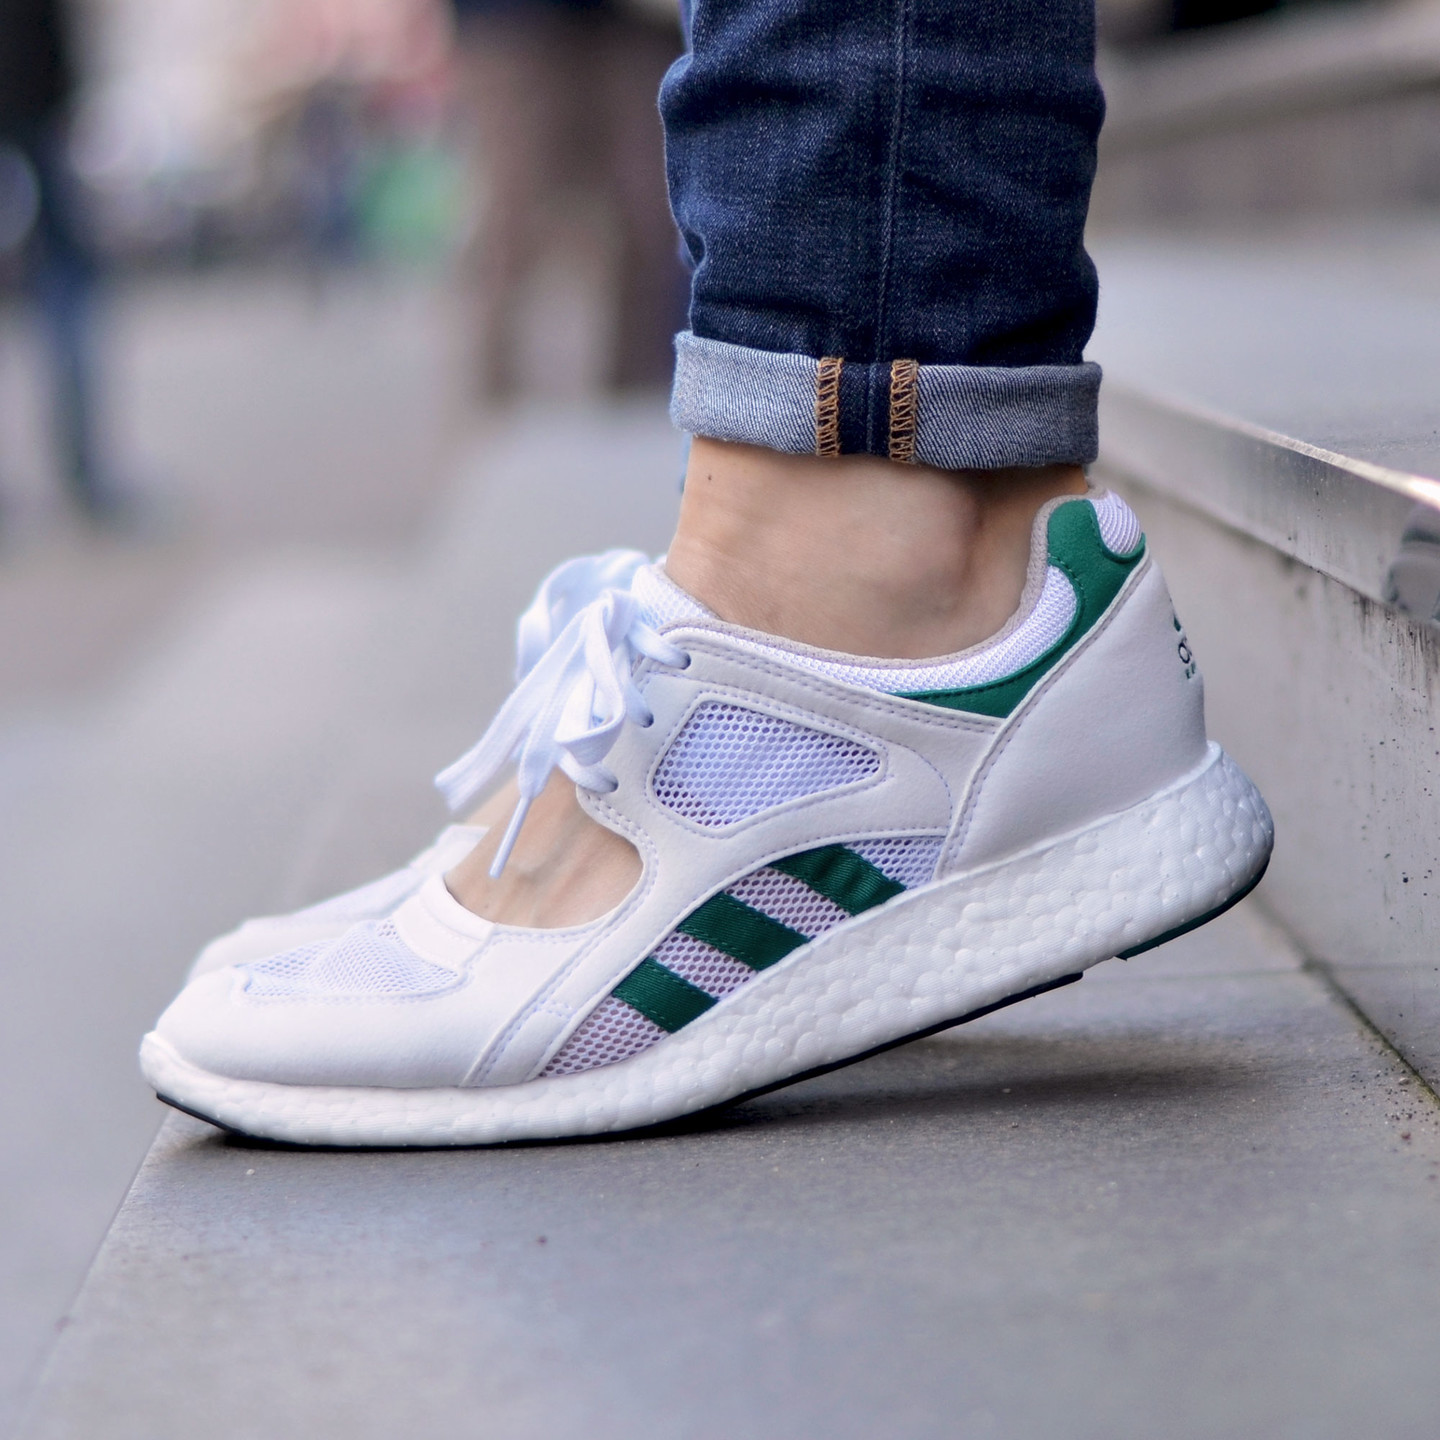 lowest price 9cb7d 92b62 adidas Equipment Racing 91/16 EQT Boost | HYPES ARE US ...